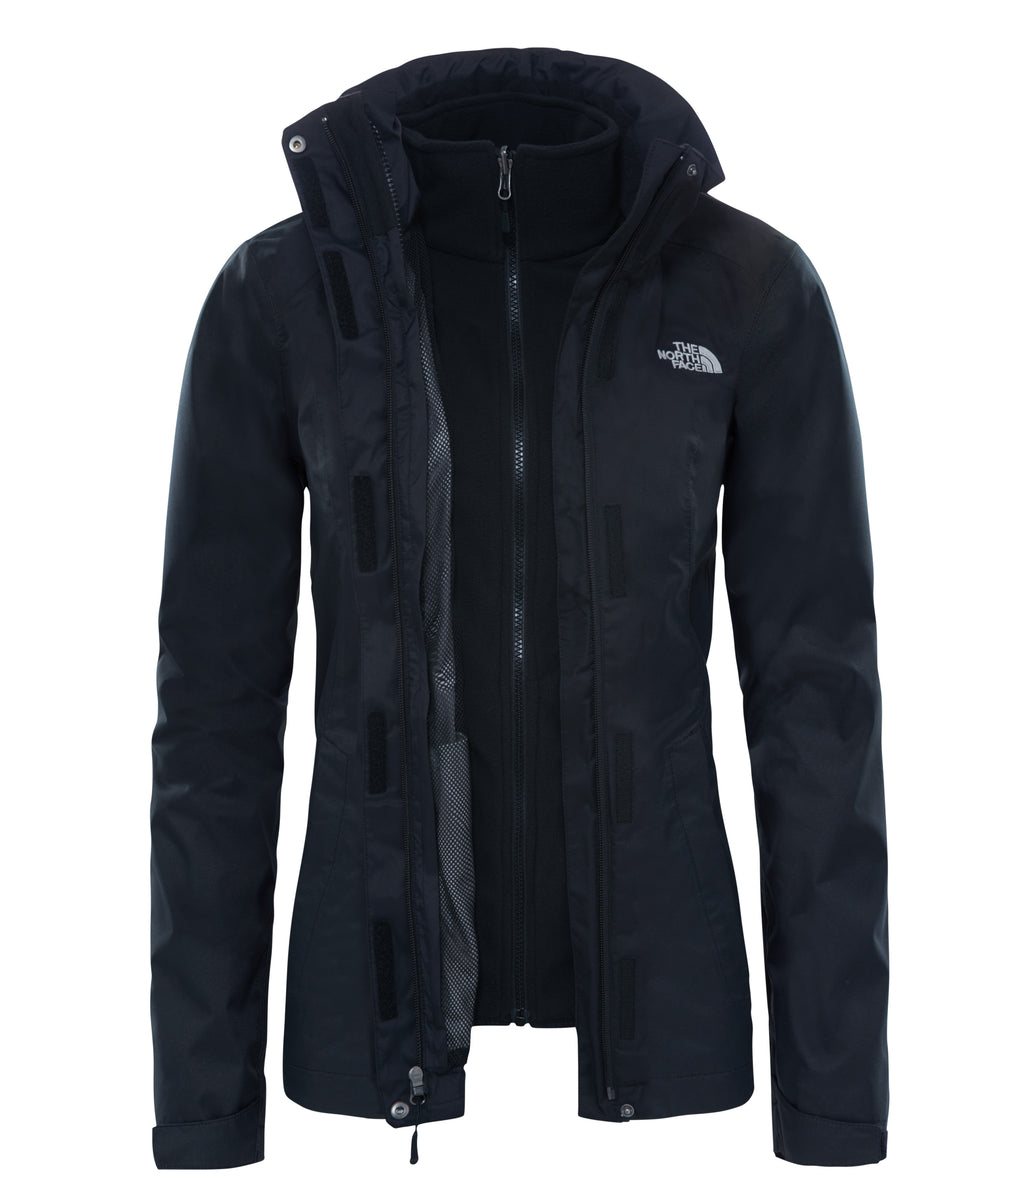 The North Face Women's Evolve II Triclimate promotional Jacket